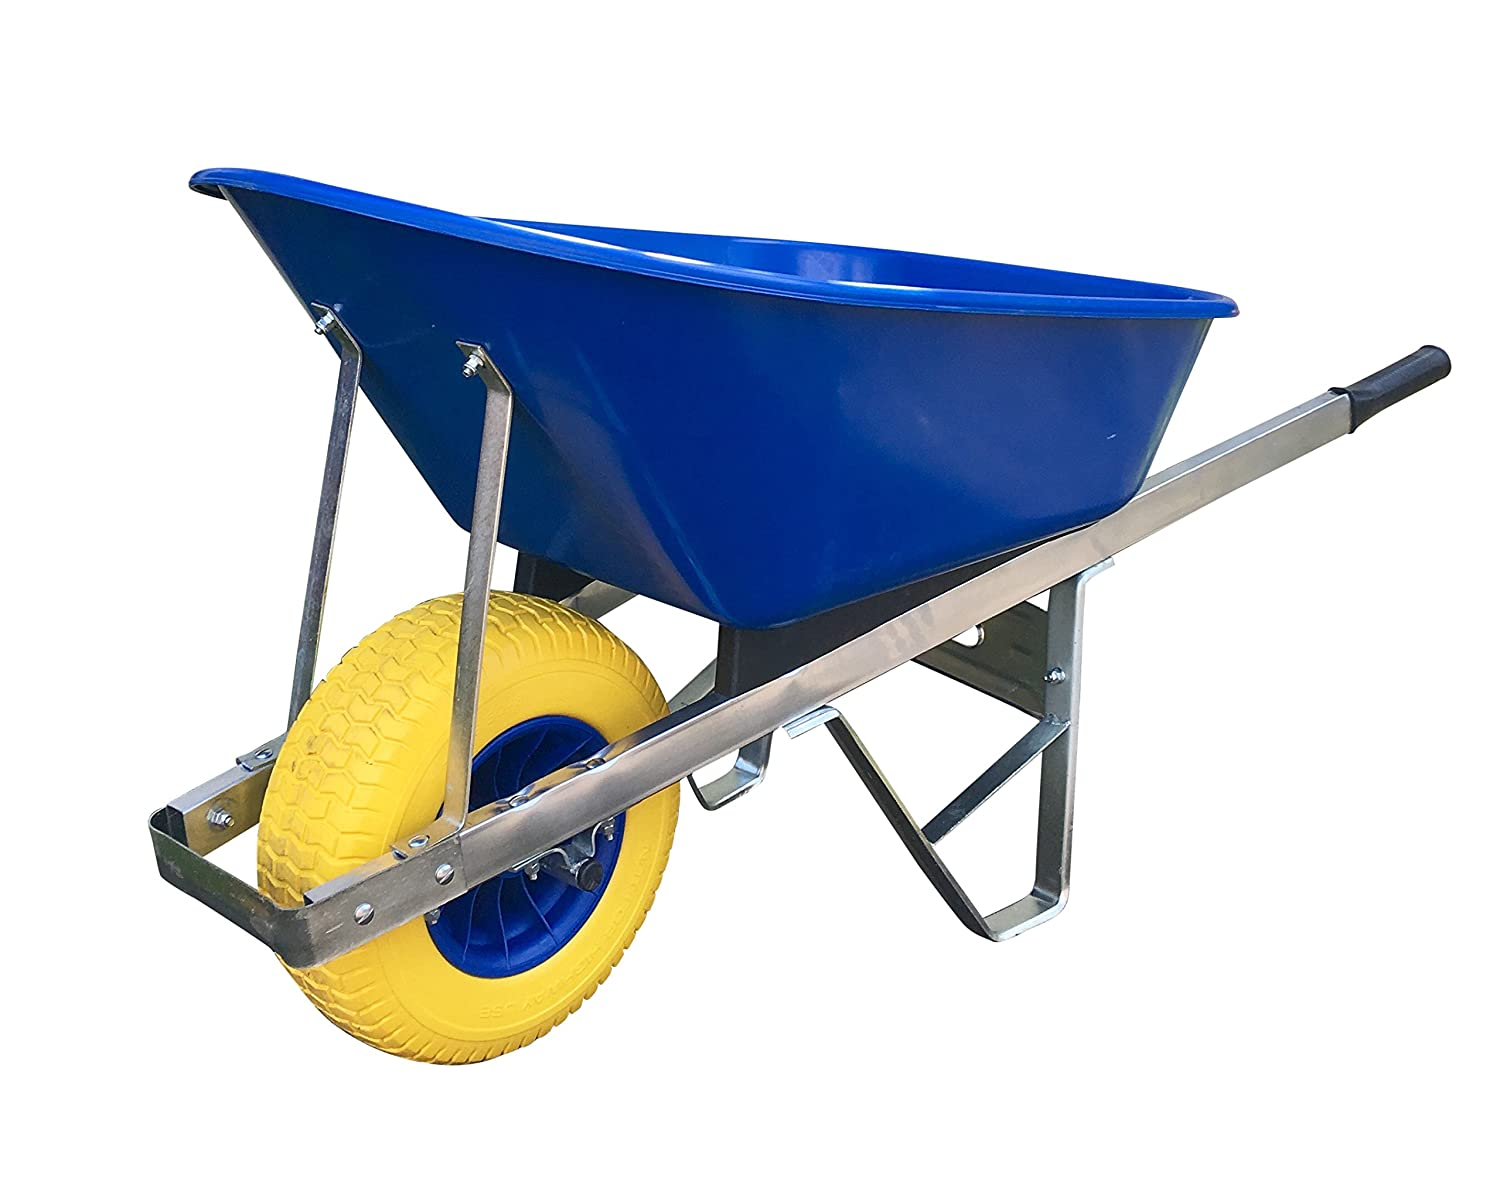 Yelding 120L wheelbarrow - Blue with 150mm puncture proof tyre delivered fully assembled Wheelbarrows Direct Ltd.